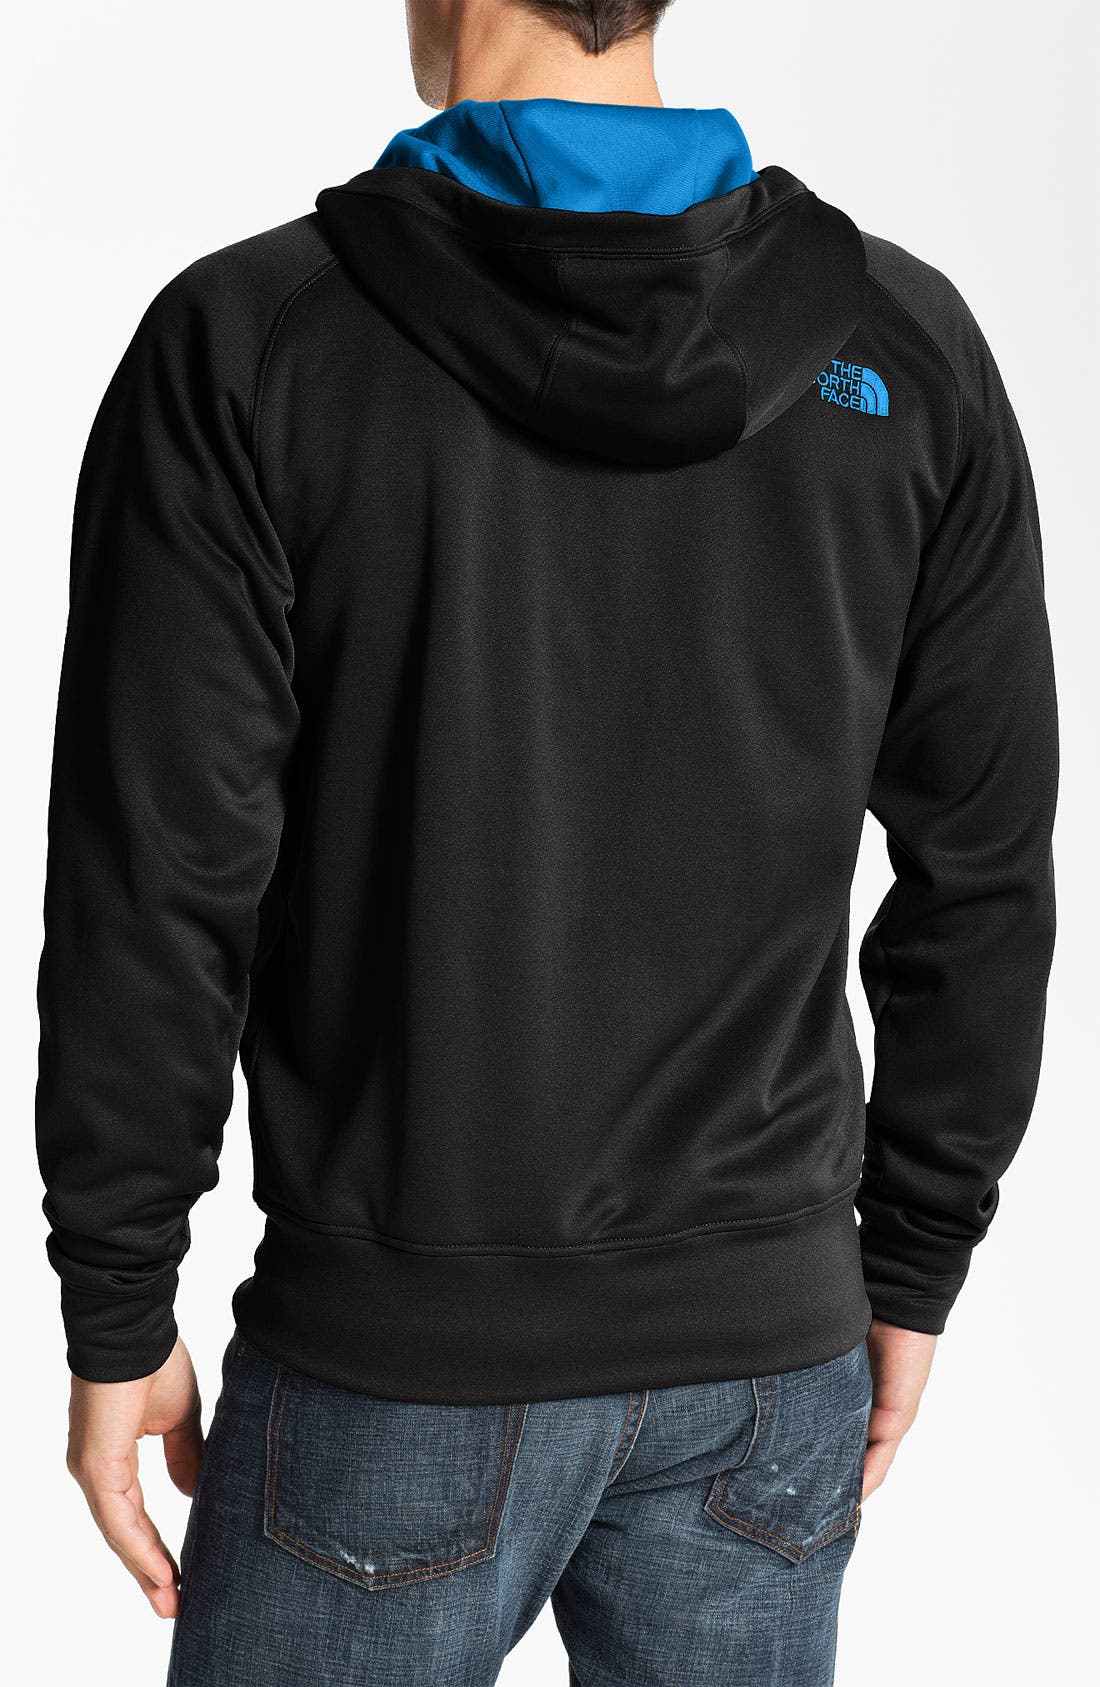 Alternate Image 2  - The North Face 'Cowells' Zip Hoodie